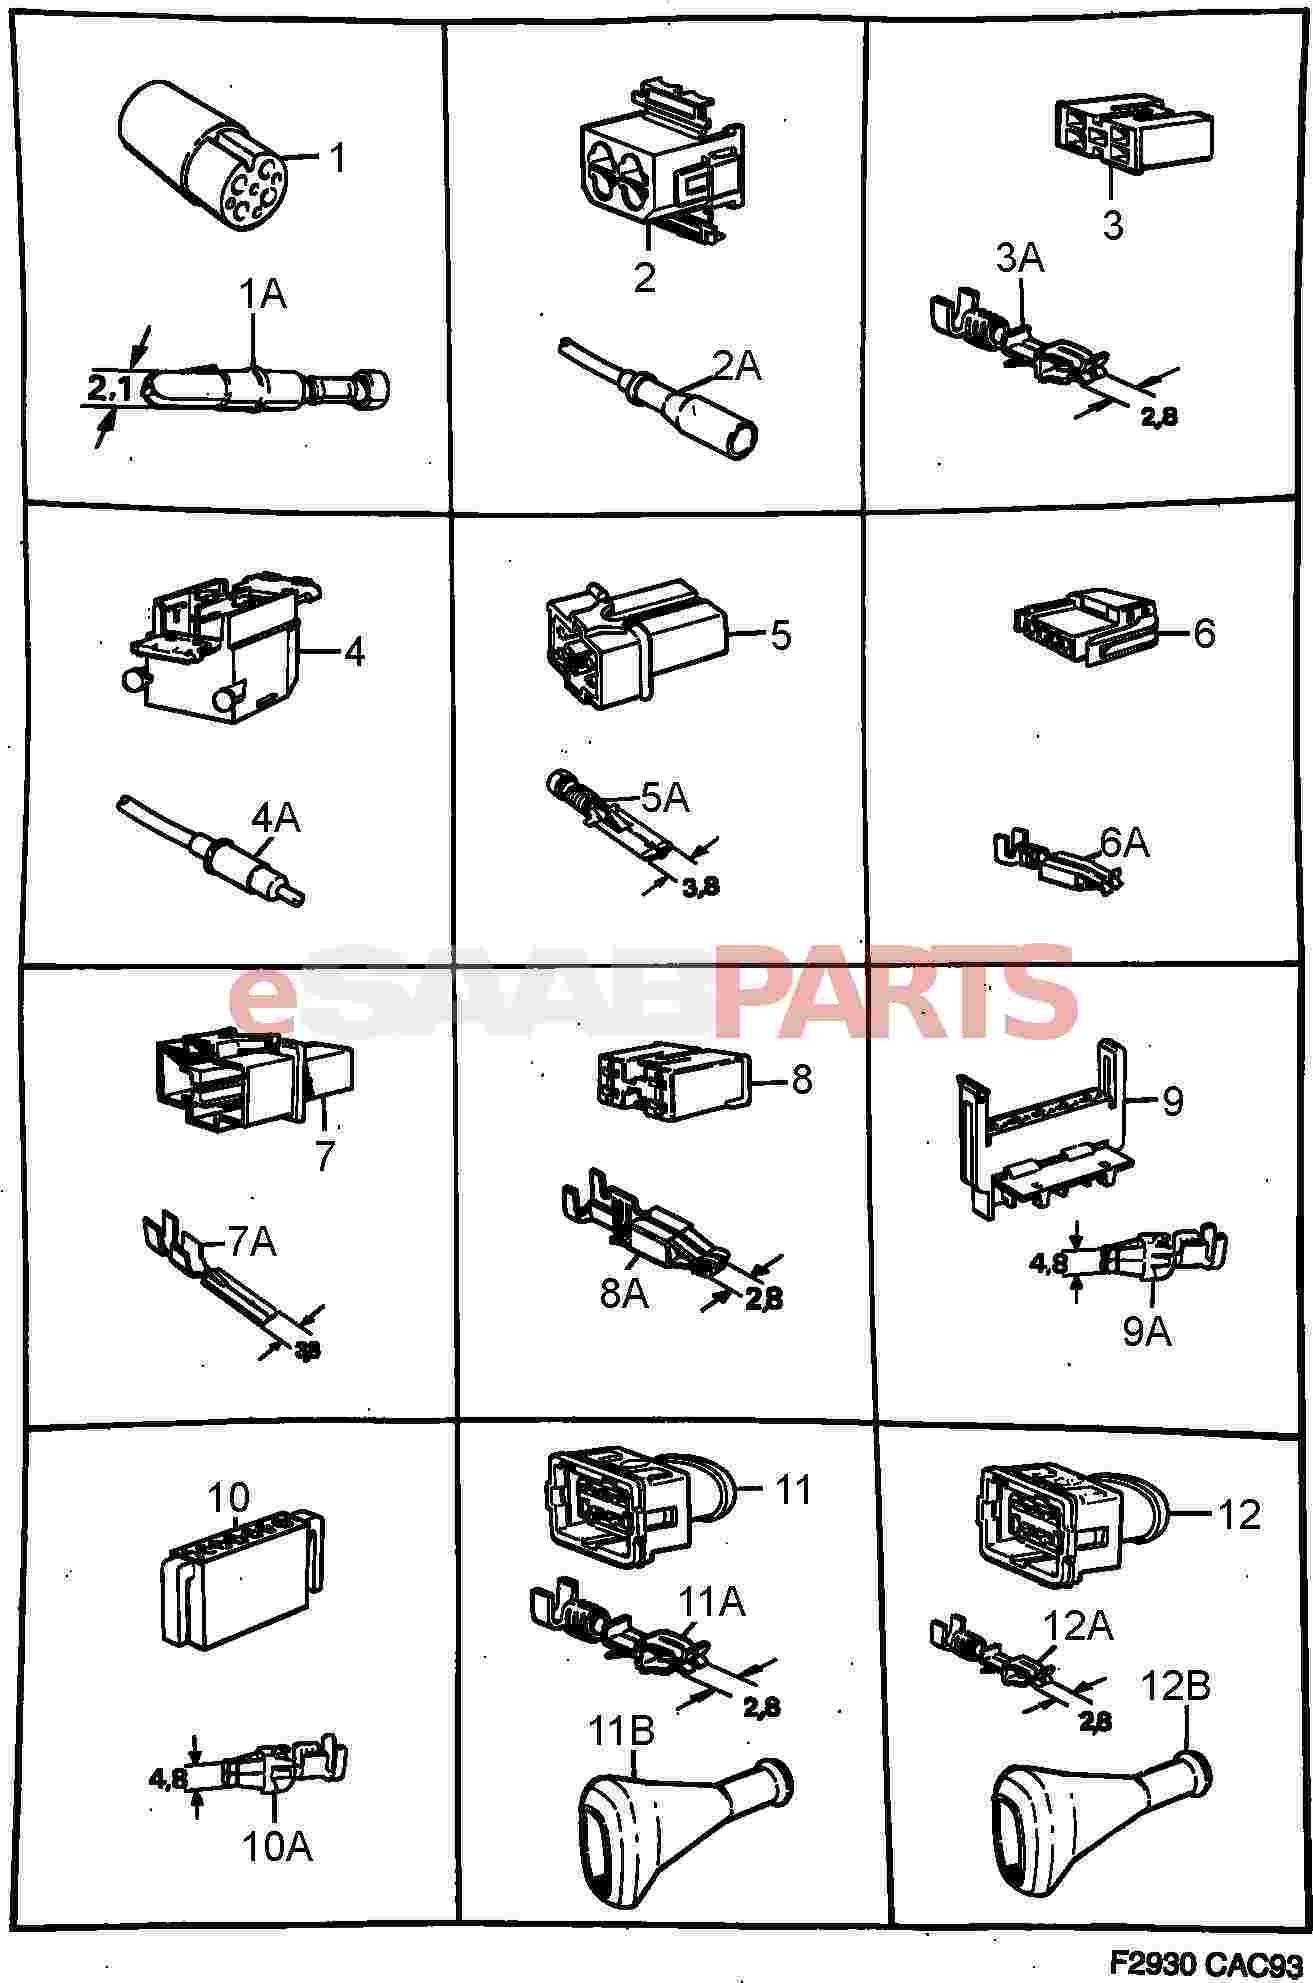 Types Of Harness Connector Auto Electrical Wiring Diagram Powerbass Subwoofer Ford F800 On Fuse Box 1996 Nissan Maxima Keyless Entry Fender Japan